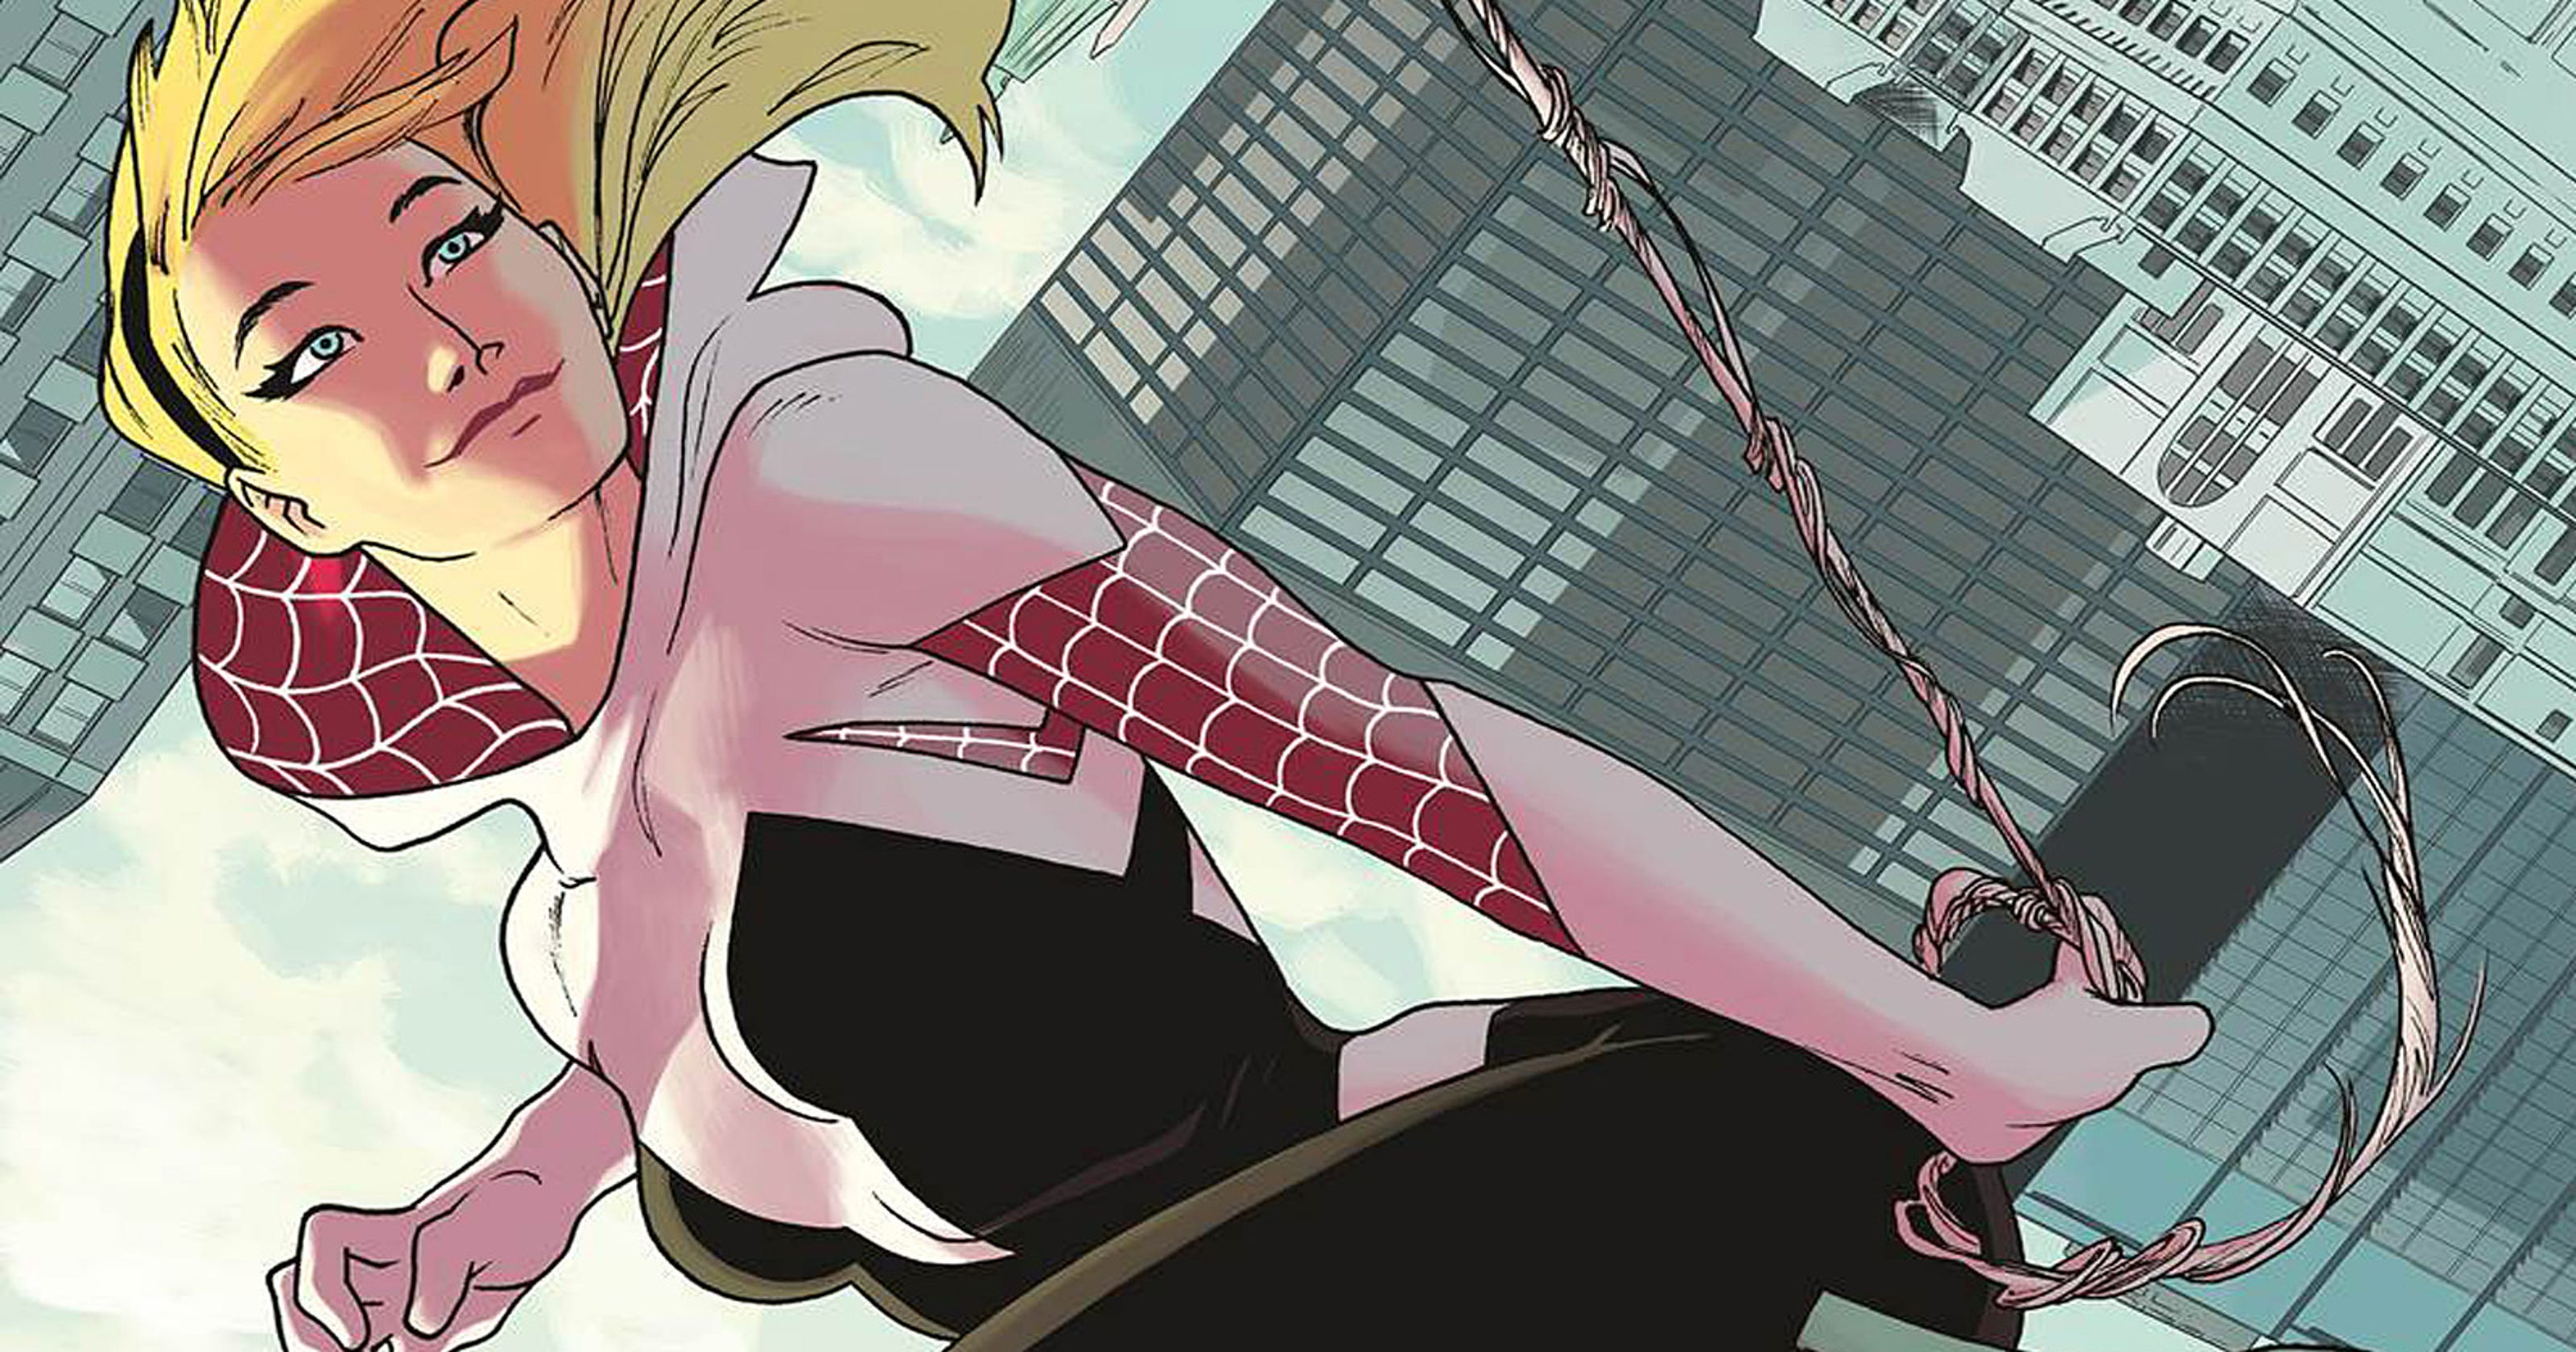 'Spider-Gwen' puts female spin on an icon